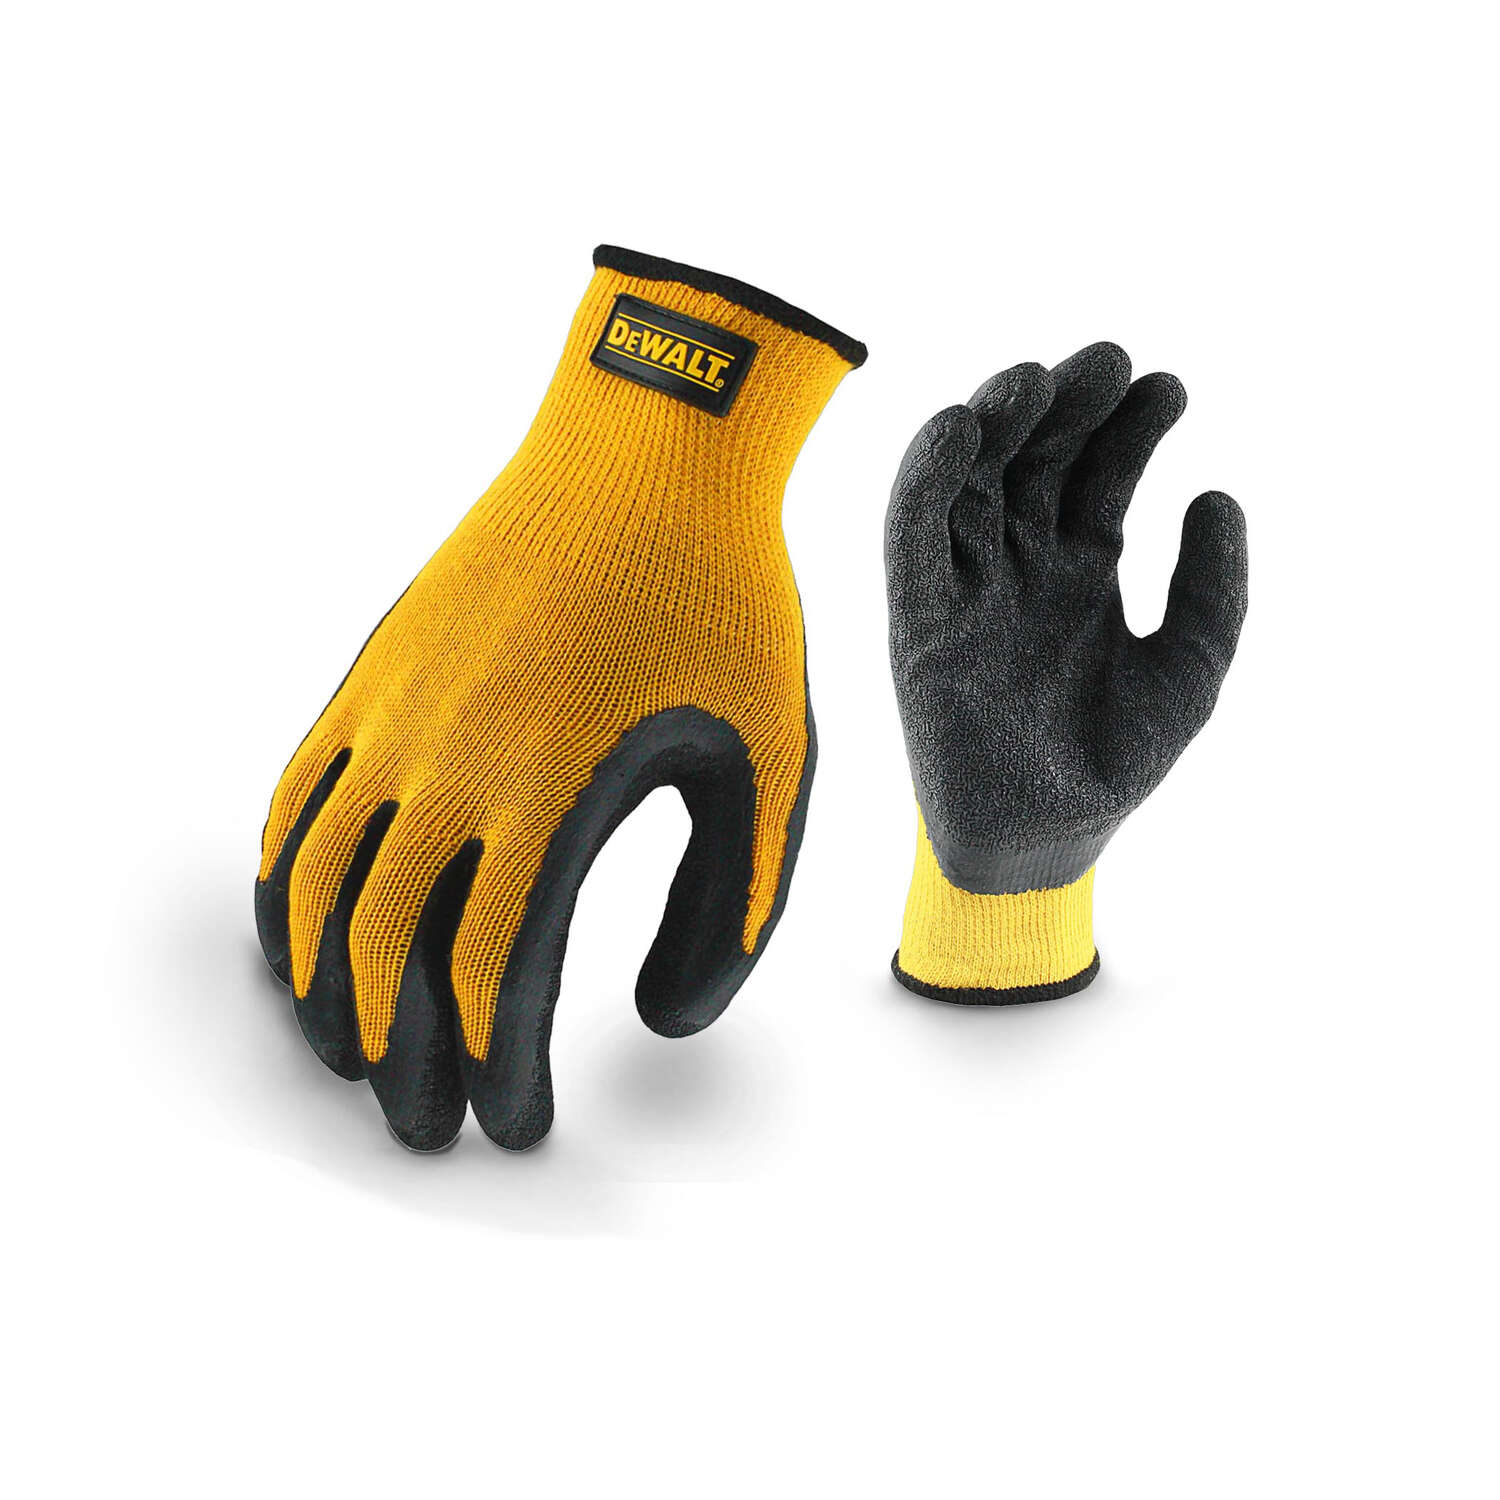 DeWalt  Radians  Unisex  Rubber  Grip  Gloves  Black/Yellow  M  1 pk